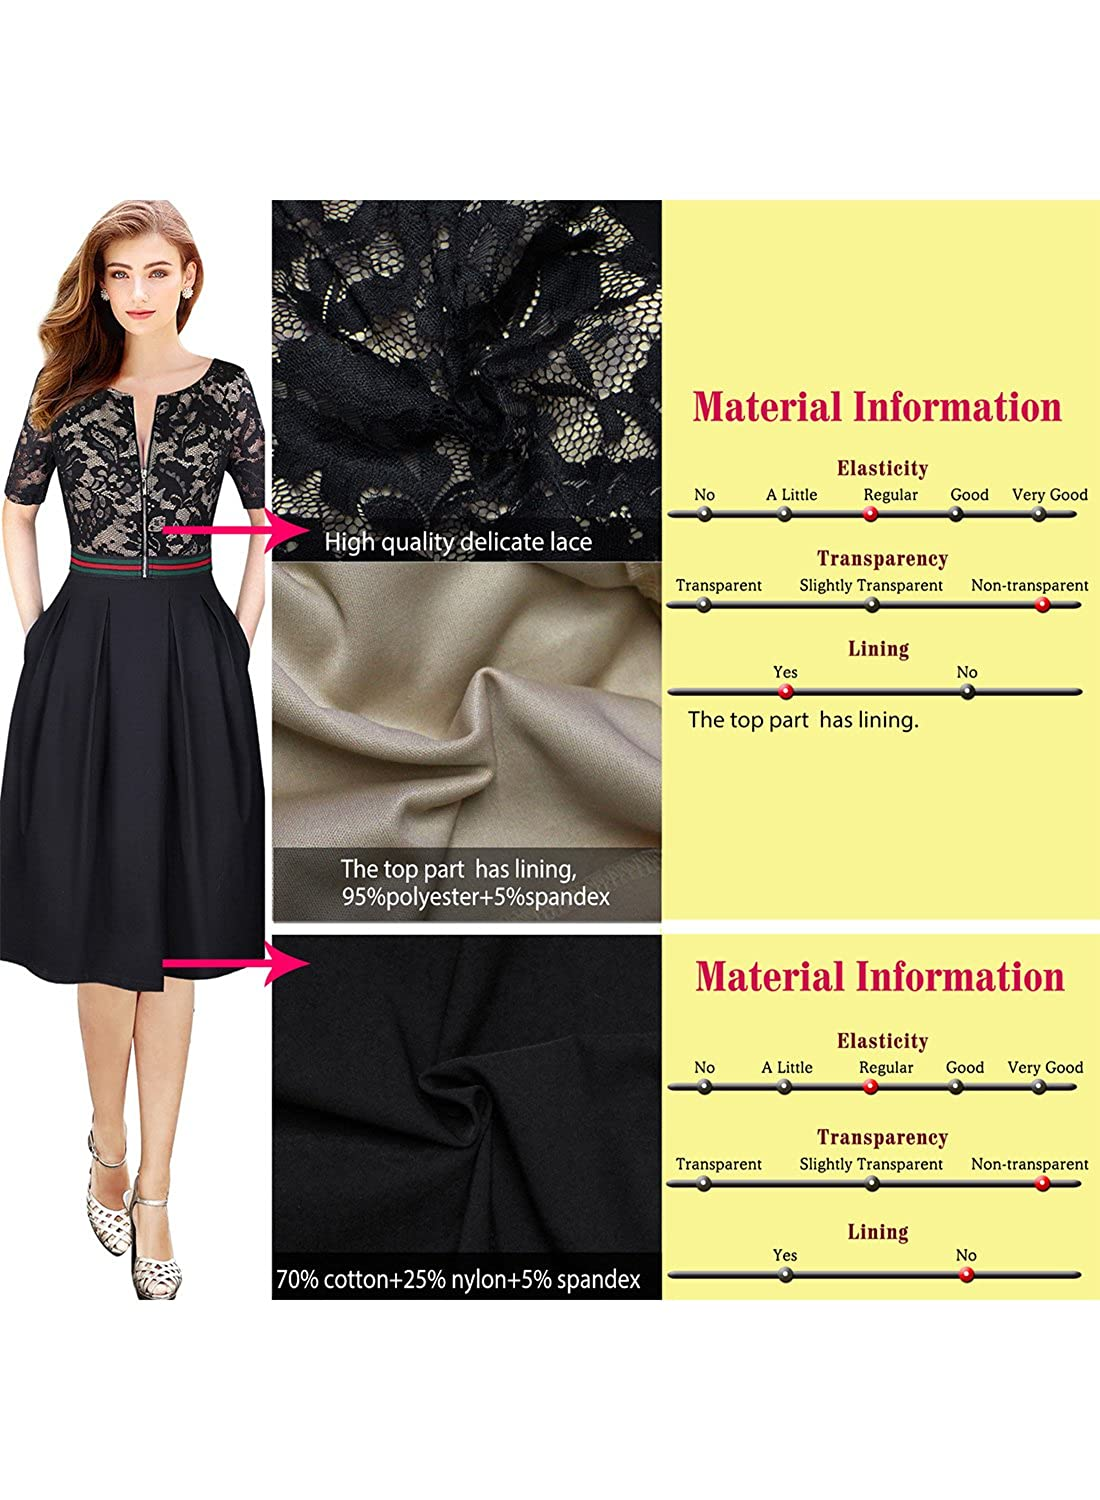 52db1457393a VFSHOW Womens Floral Lace Print Zip Up Pocket Cocktail Party A-Line Dress  at Amazon Women's Clothing store: